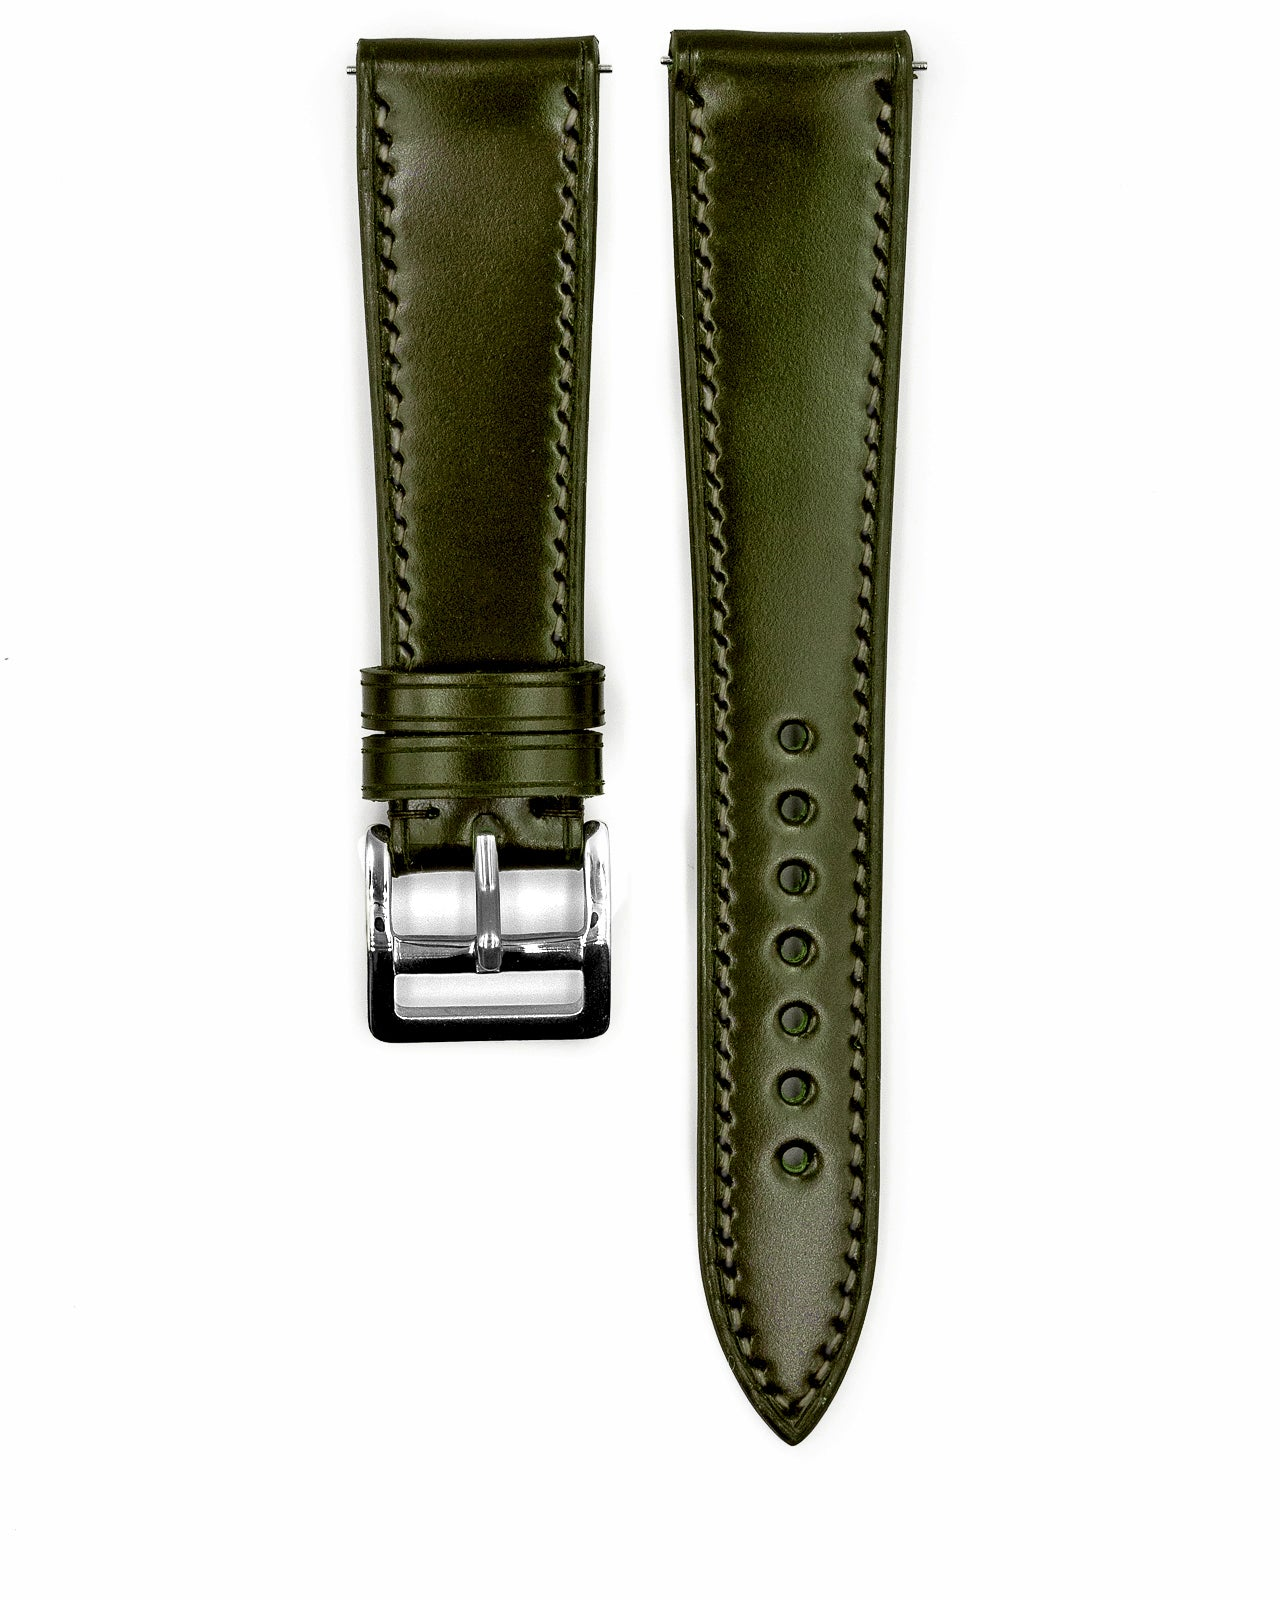 Shell Cordovan Strap (Olive Green)